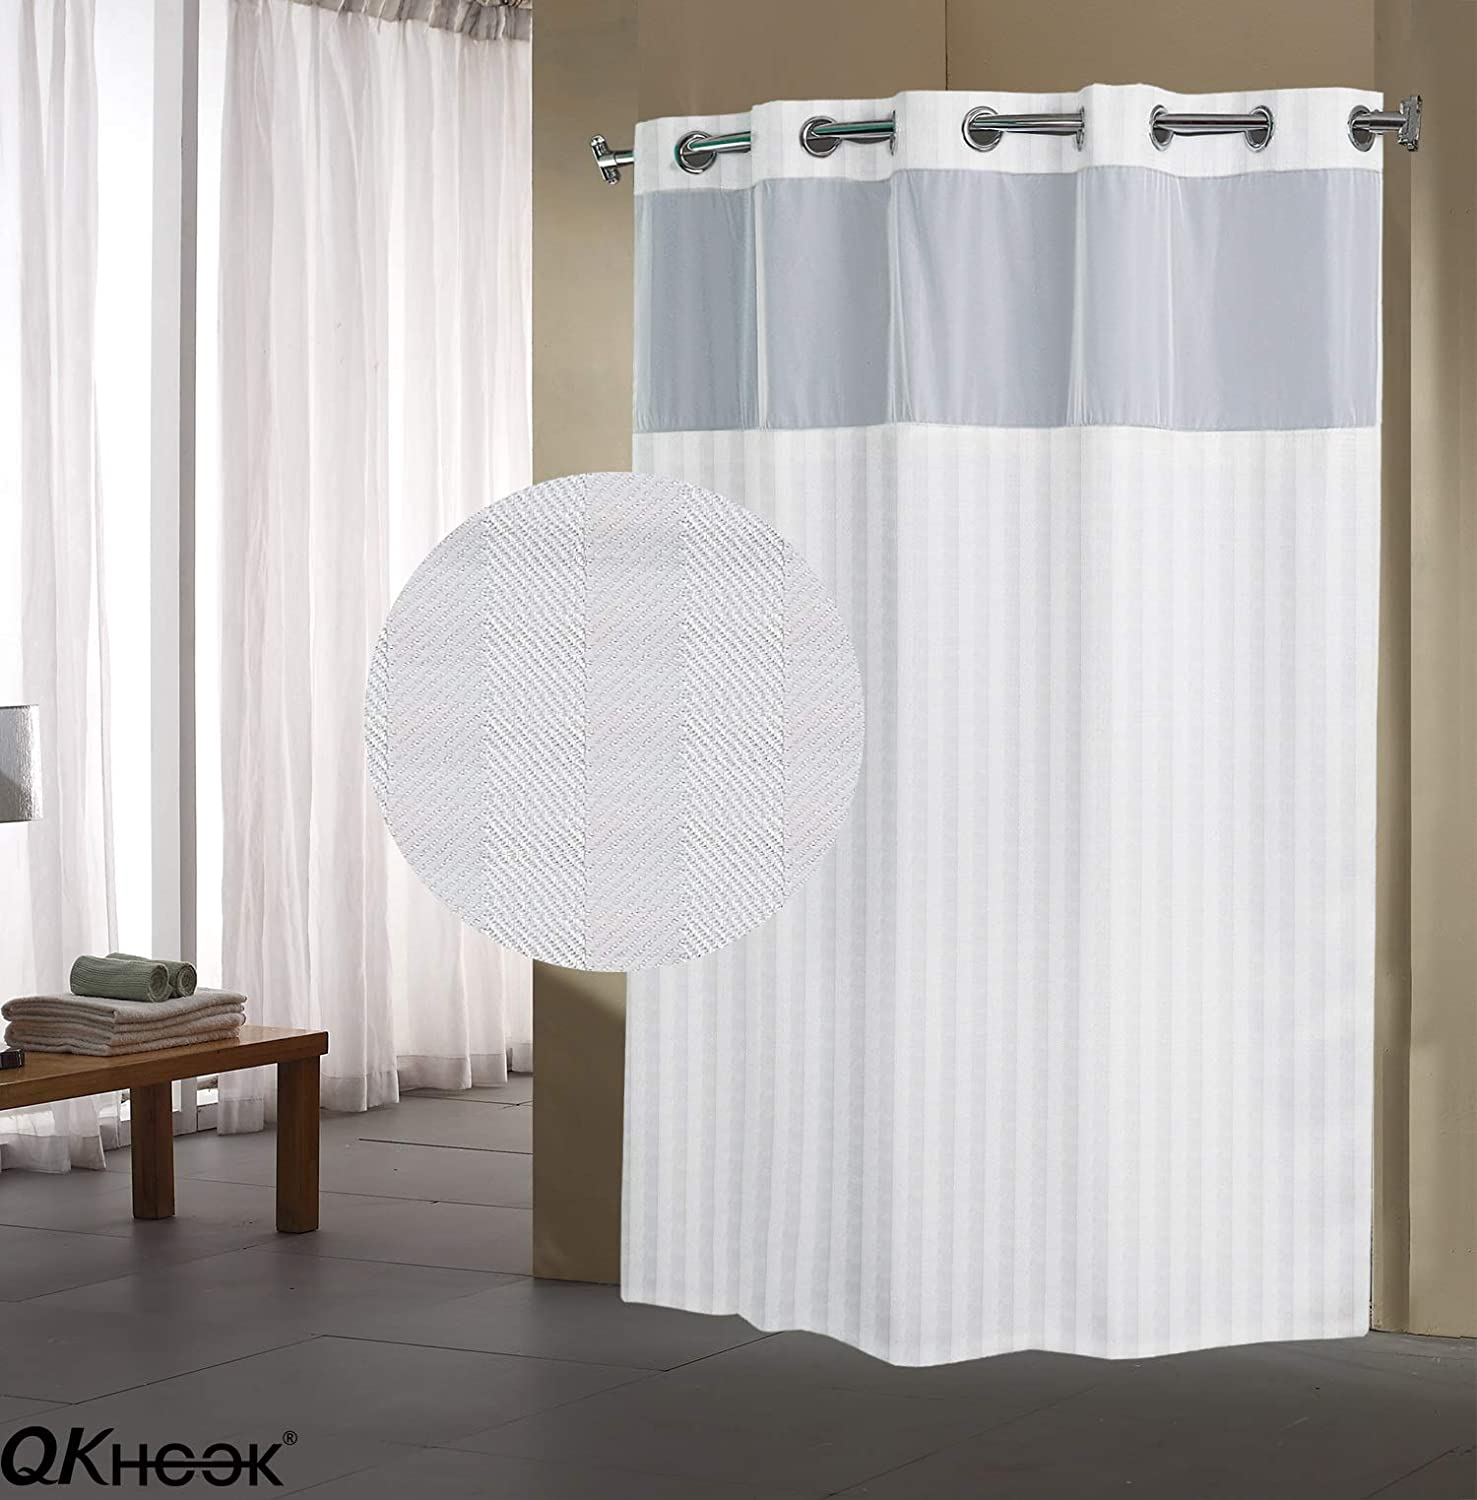 QKHOOK Snap-in Fabric Liner for Shower Curtain 1 Pack Waterproof 70x54 inches